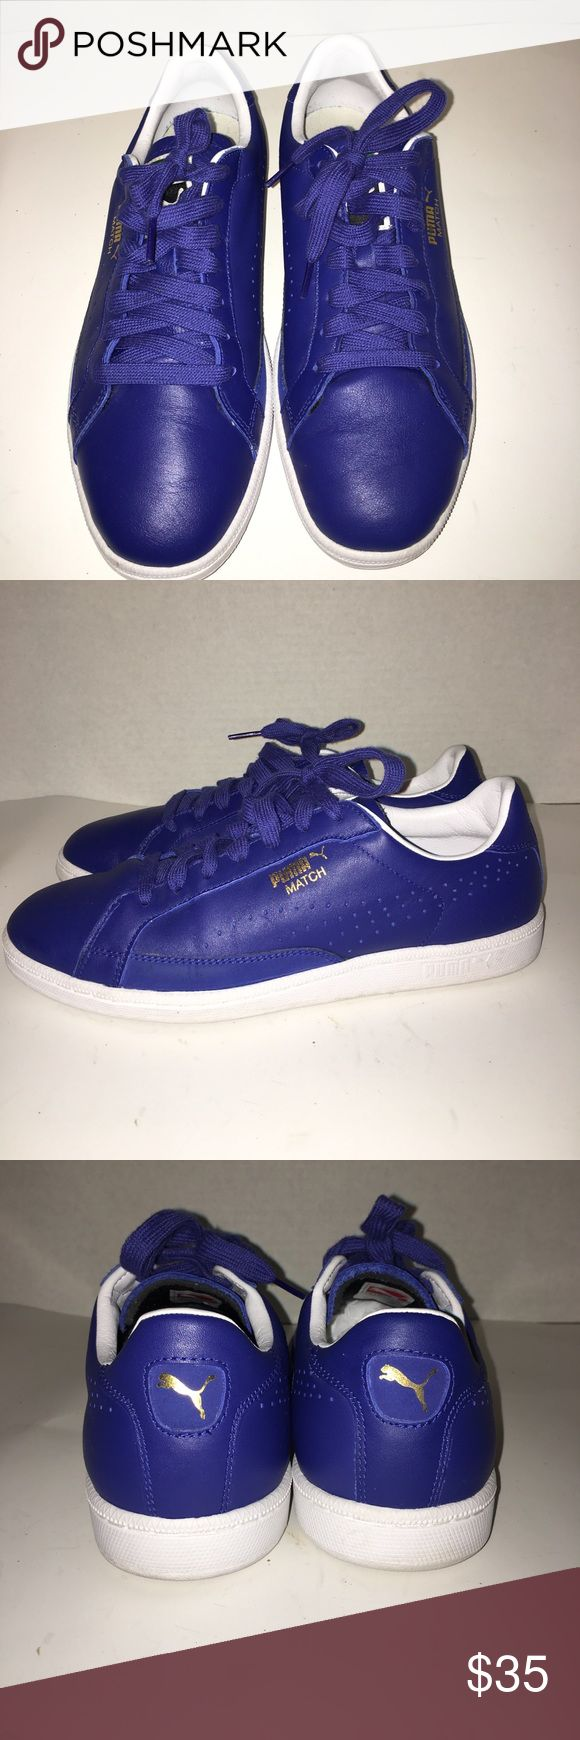 Authentic Puma Sneakers Authentic Puma Sneakers in good condition, worn only a few times / Please see photos for more detail / *****Offers Accepted***** Puma Shoes Sneakers